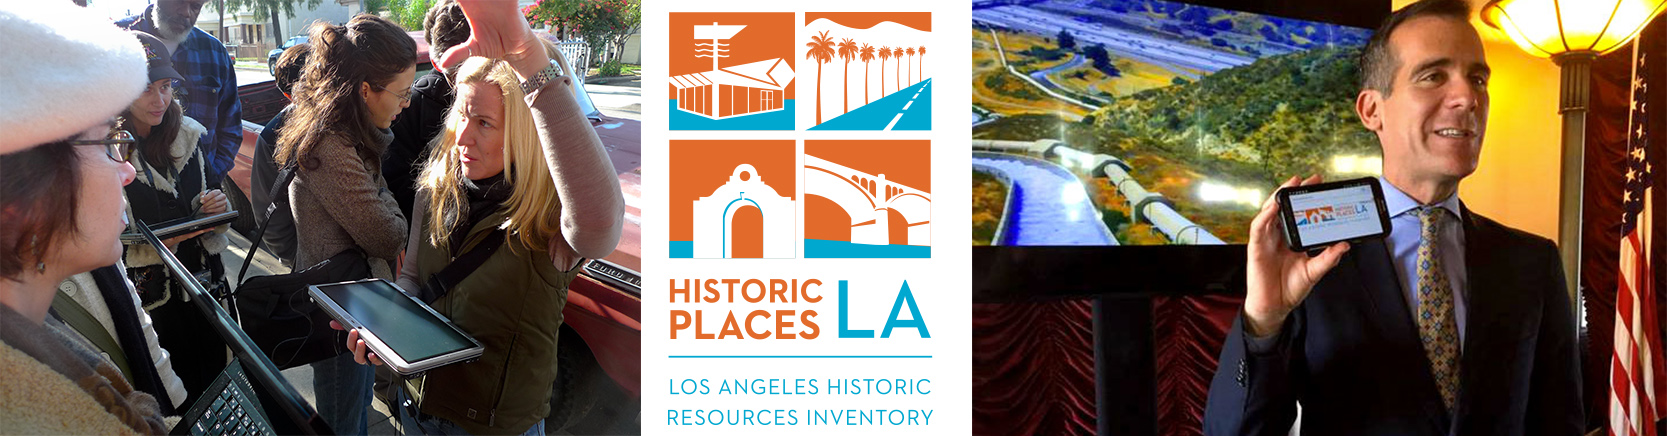 Three images from a Los Angeles project to document historic structures: a group of volunteers, the project logo, and the mayor showing the website on his phone